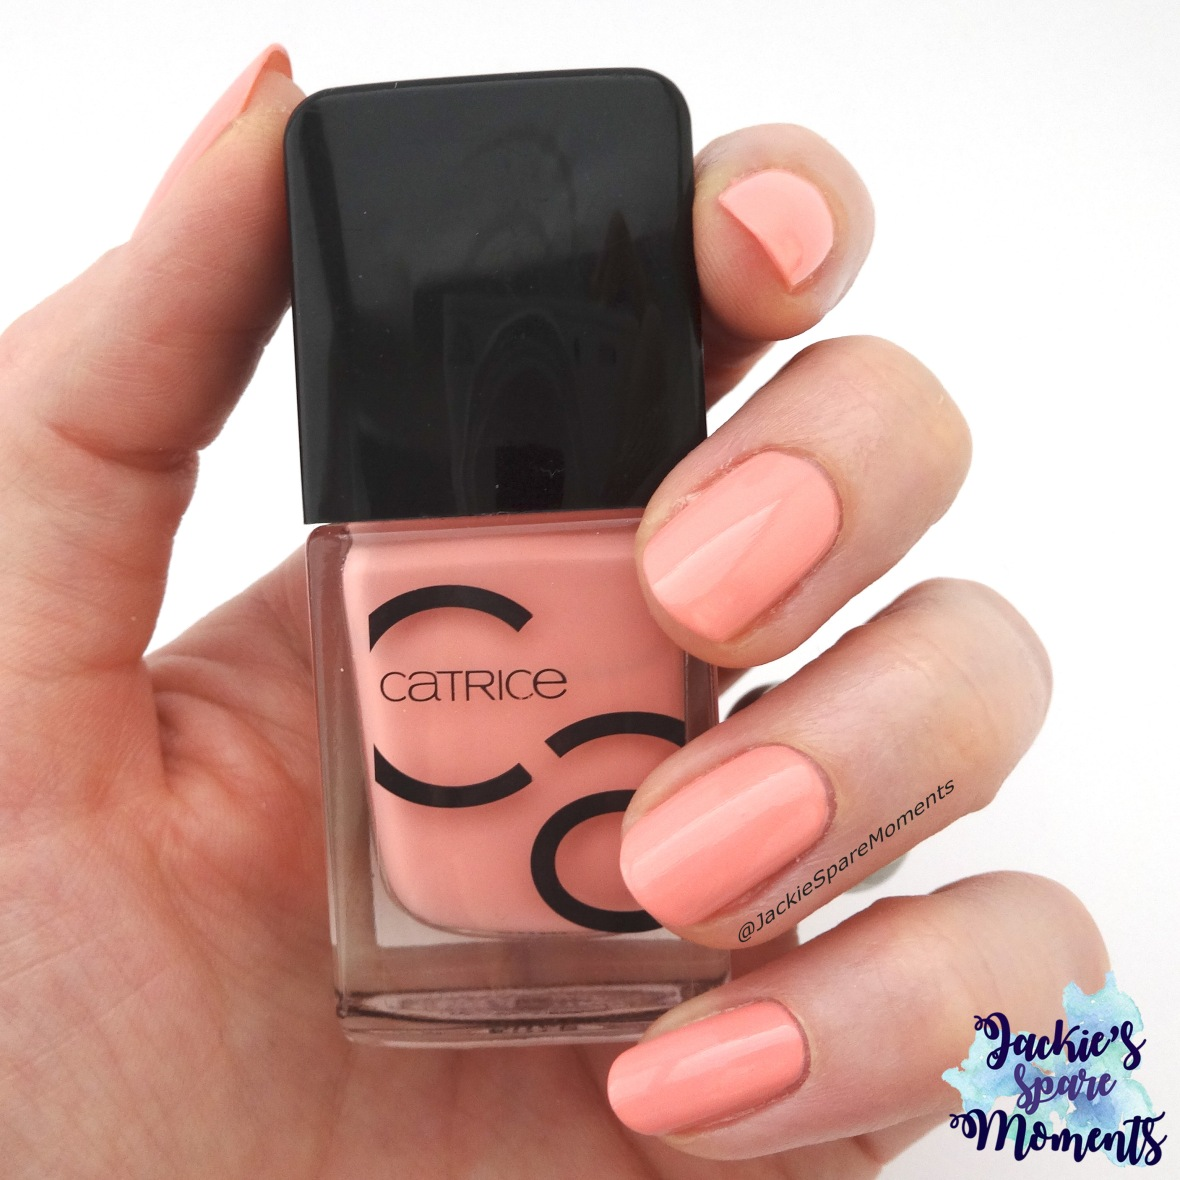 Catrice ICONails Gel Lacquer 08 Catch of the day